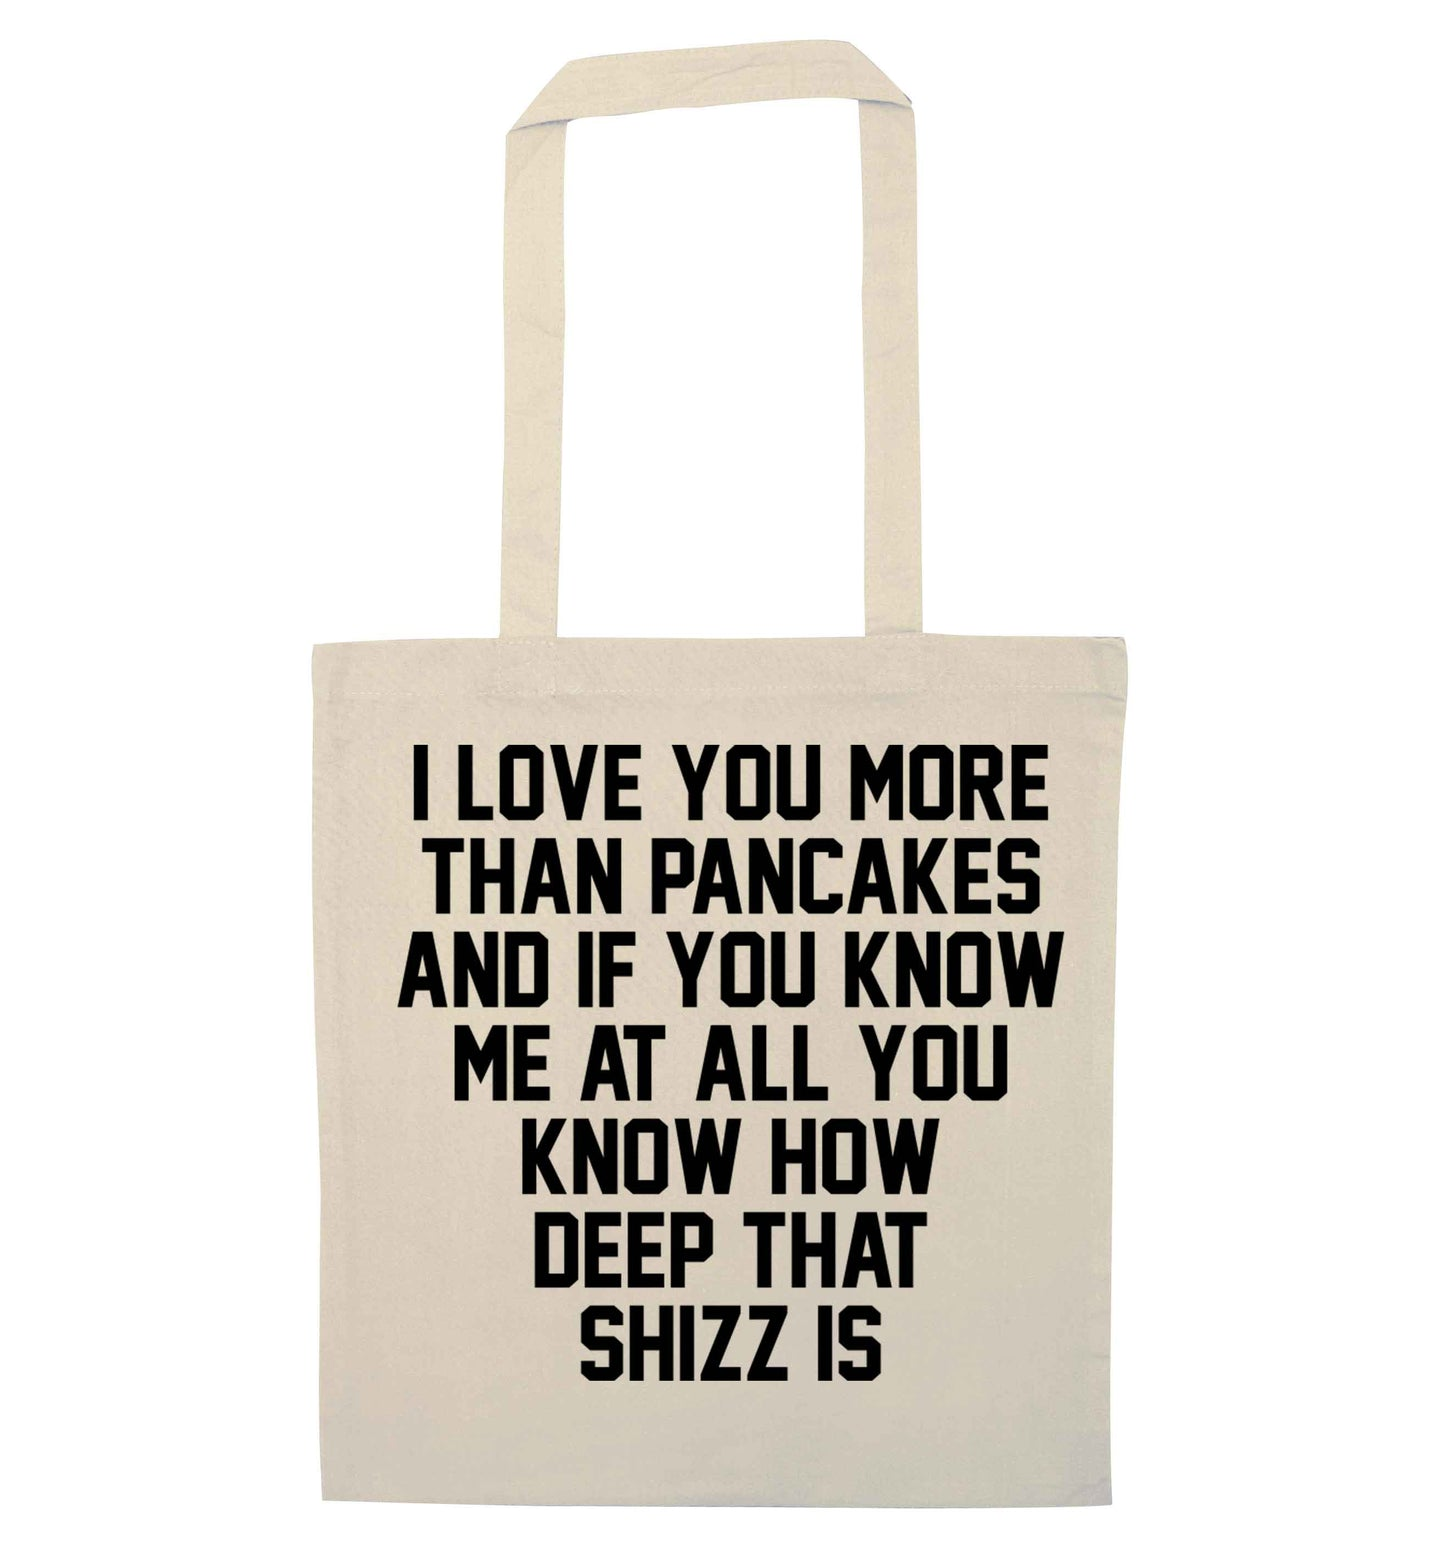 I love you more than pancakes and if you know me at all you know how deep that shizz is natural tote bag